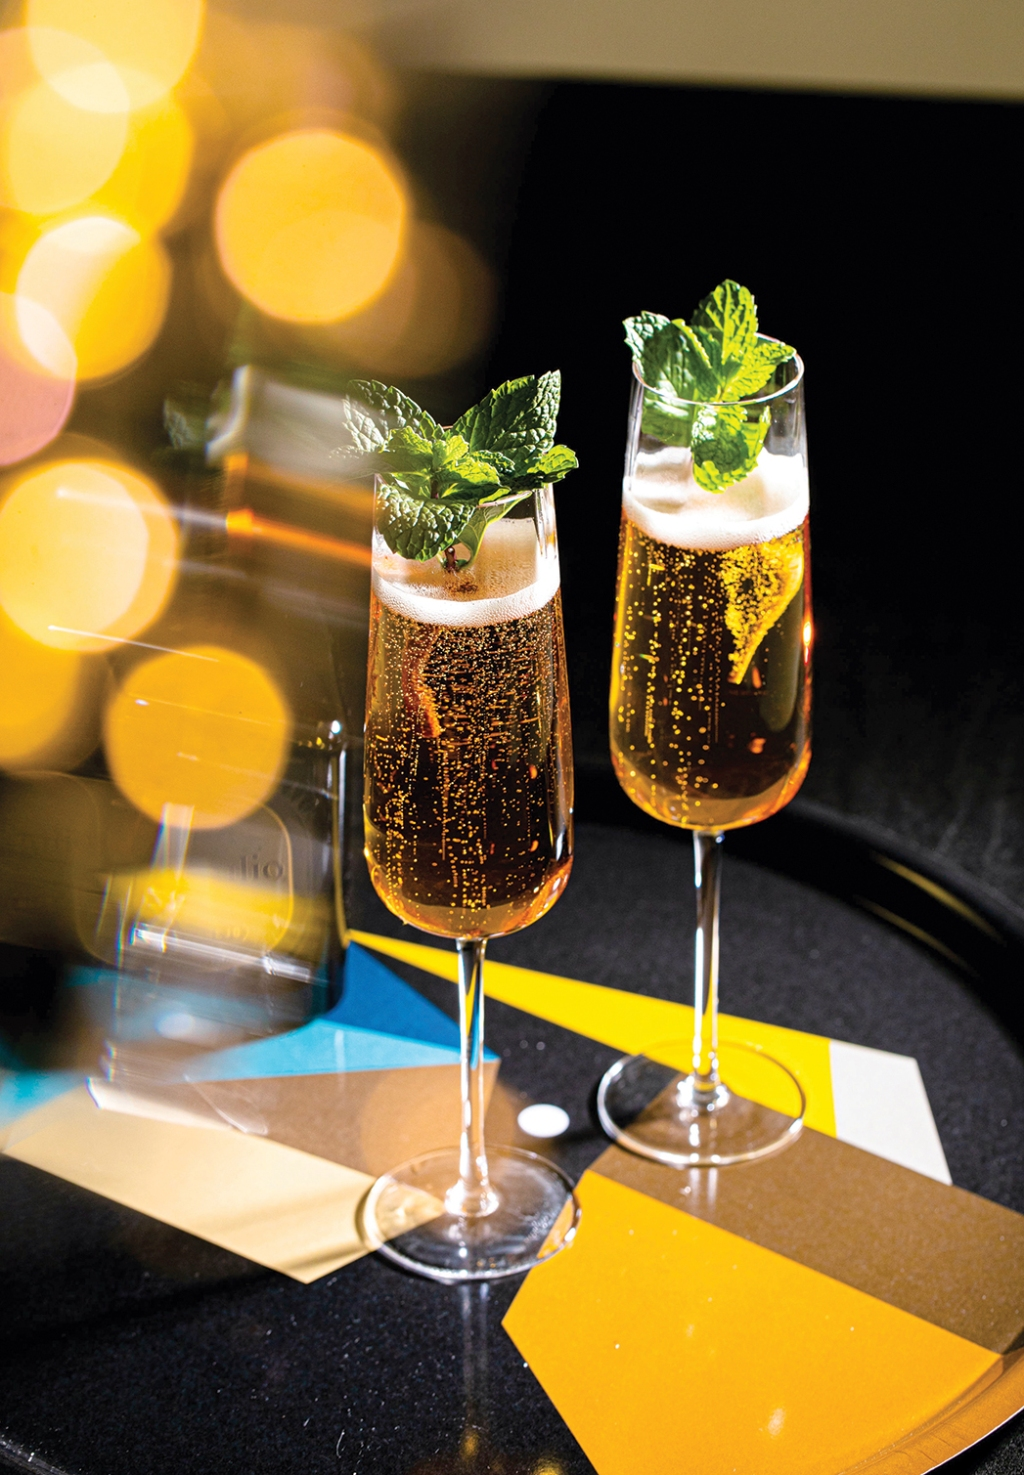 The Gilded, a make-at-home recipe created by Cocktail Academy